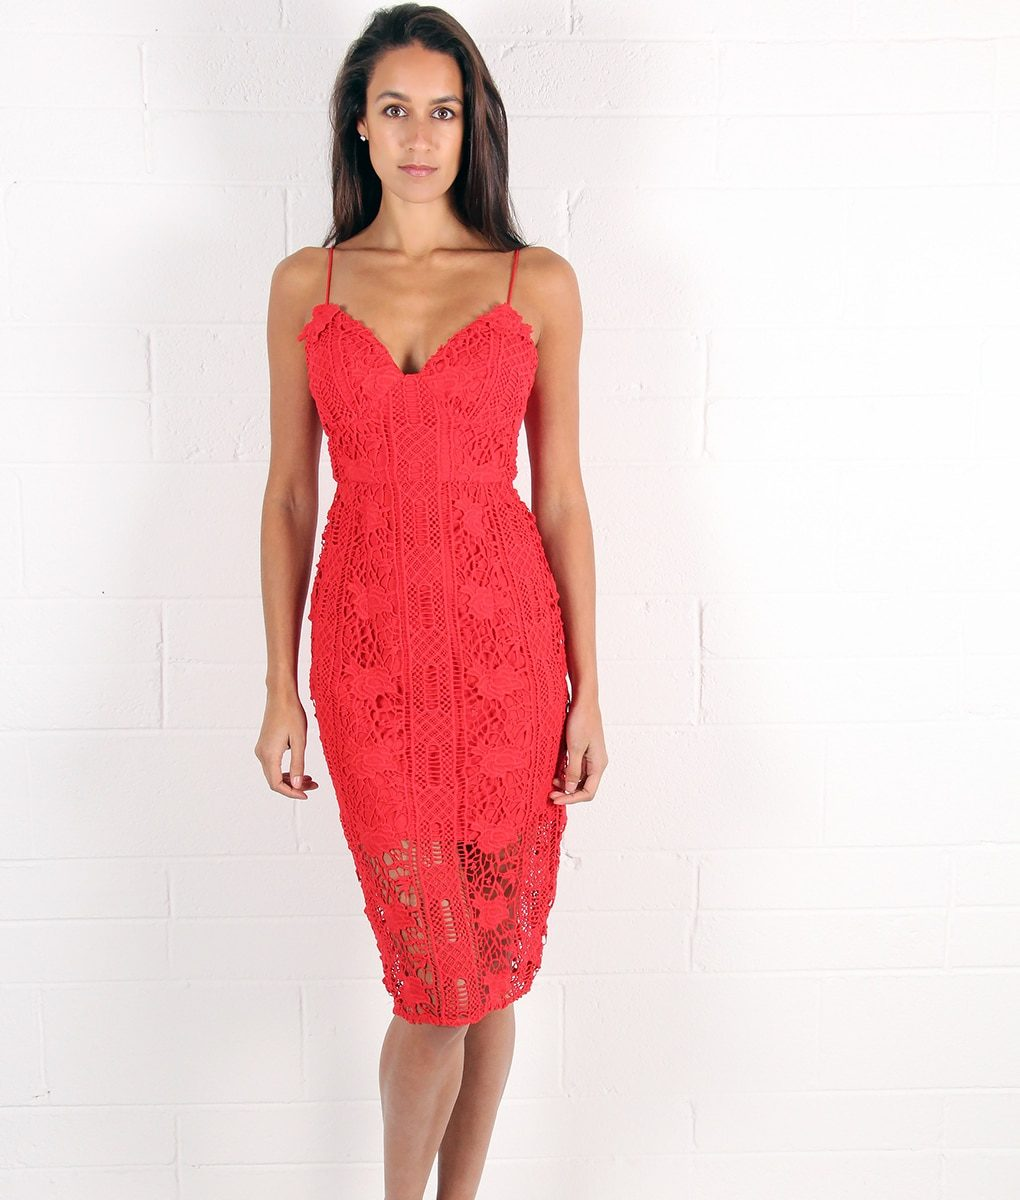 alila-red-crochet-dress-for-wedding-by-lumier-by-bariano-front2